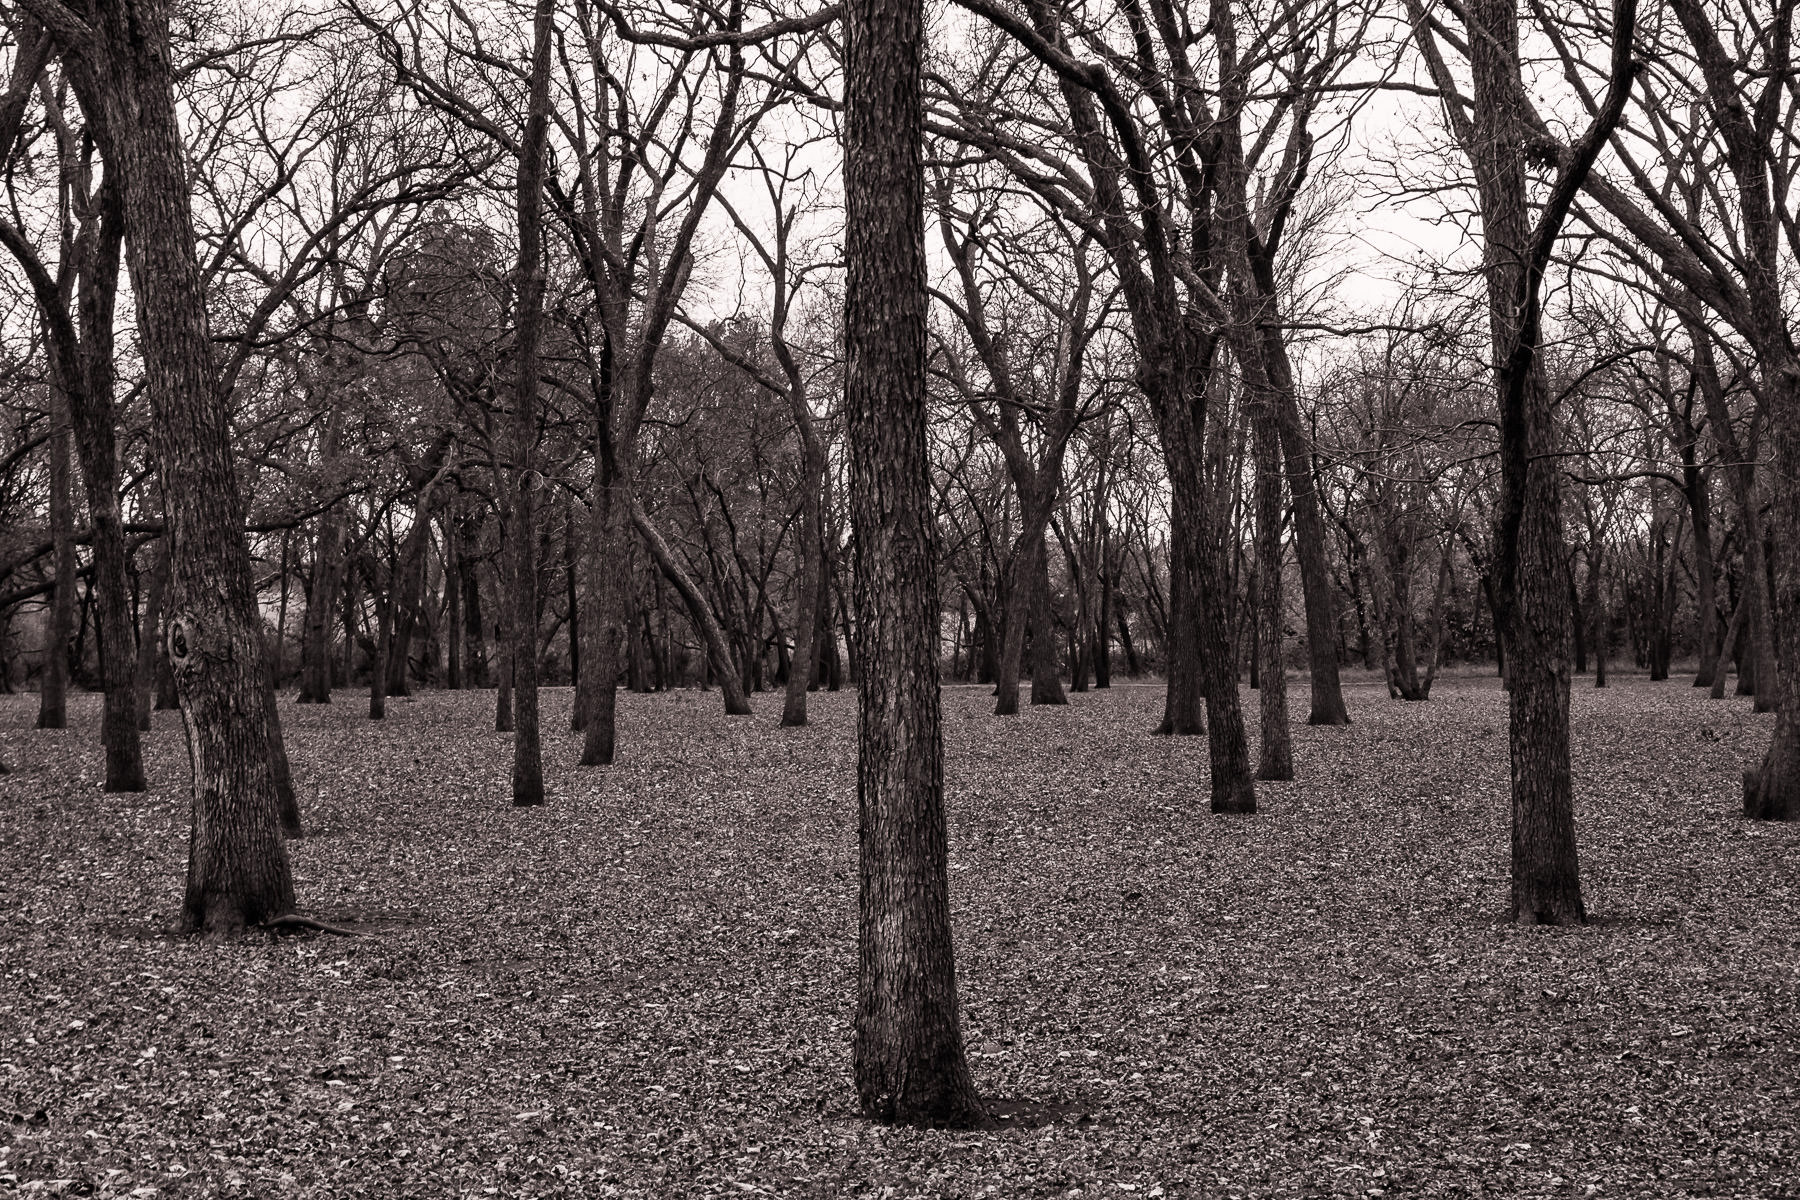 Trees grow in a forest on the edge of Breckinridge Park, Richardson, Texas.